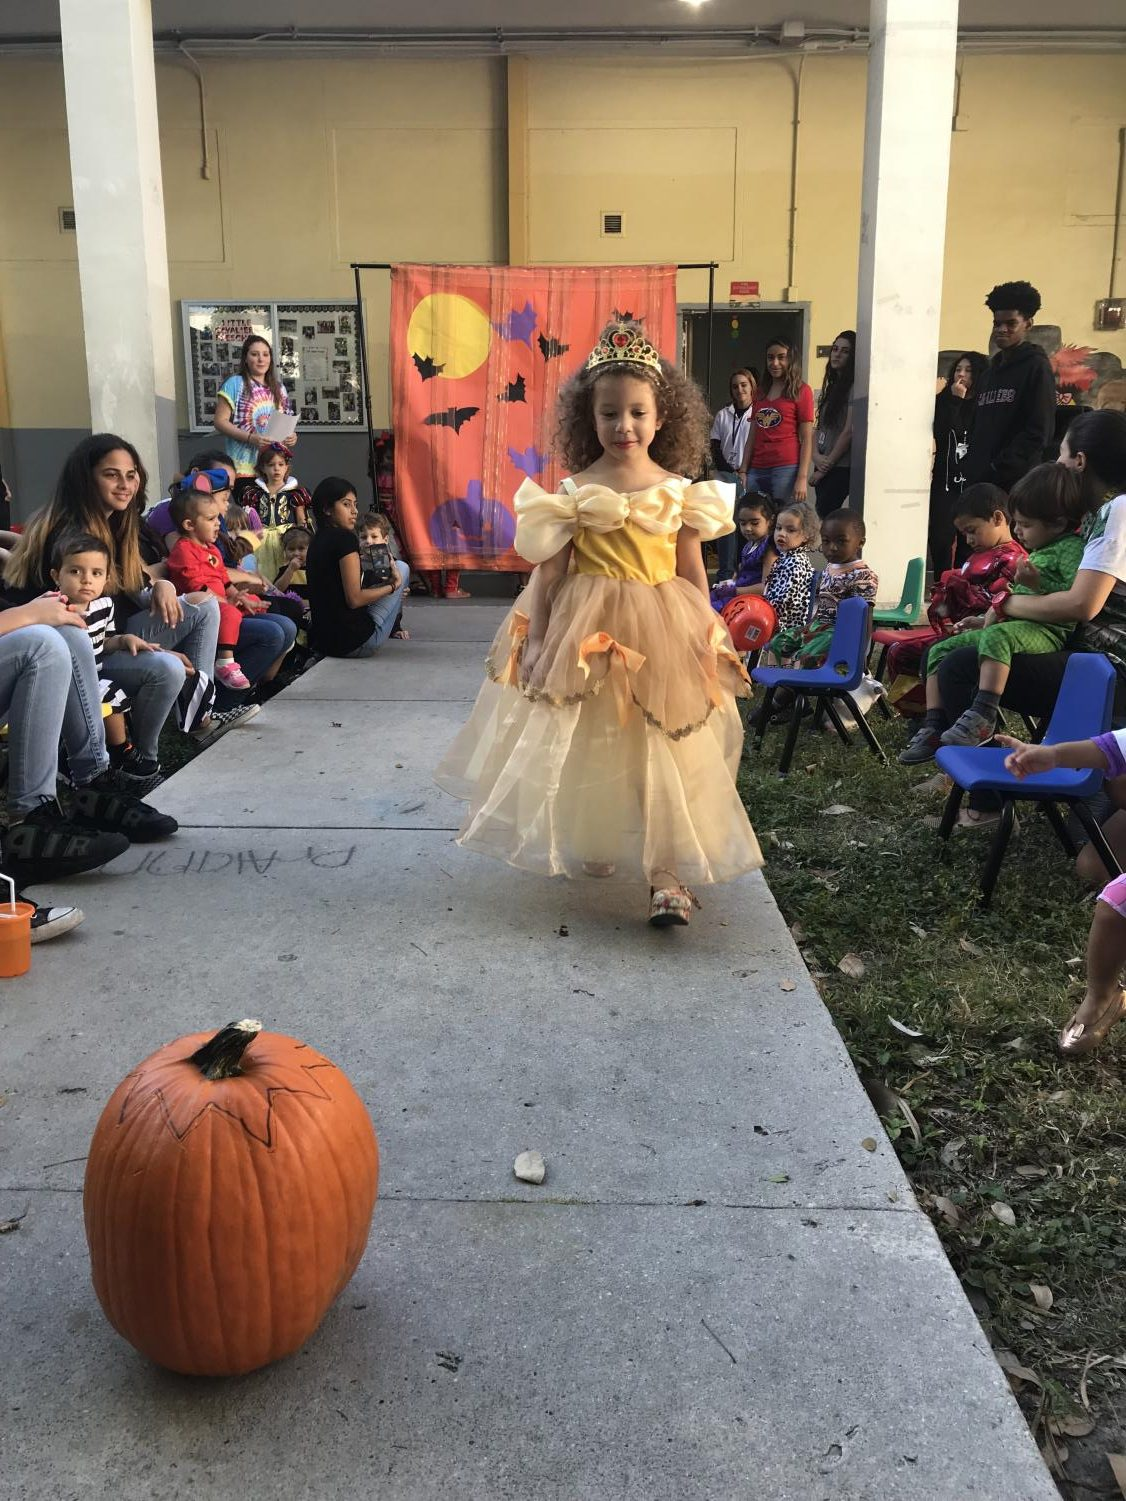 Little+Cavalier+showing+off+her+Belle+costume+at+the+Halloween+Fashion+show.